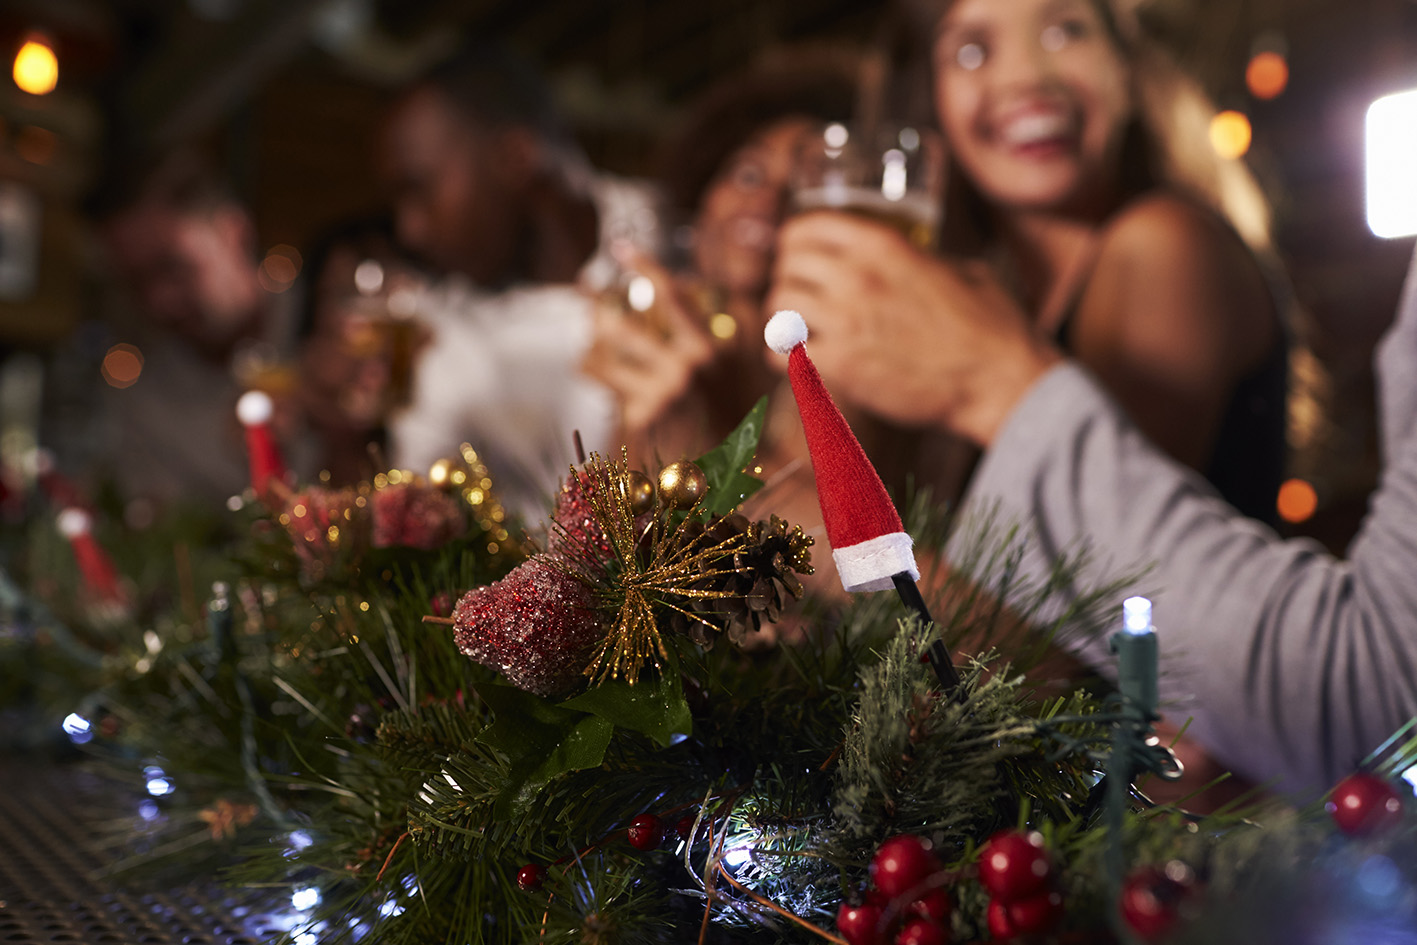 6/7th & 13/14th December priced at £650 for table of 10 - Price includes champagne receptionCanapes, 3 course dinner, with red and white wine included on the tableDJ till midnightCarriages 12.30am